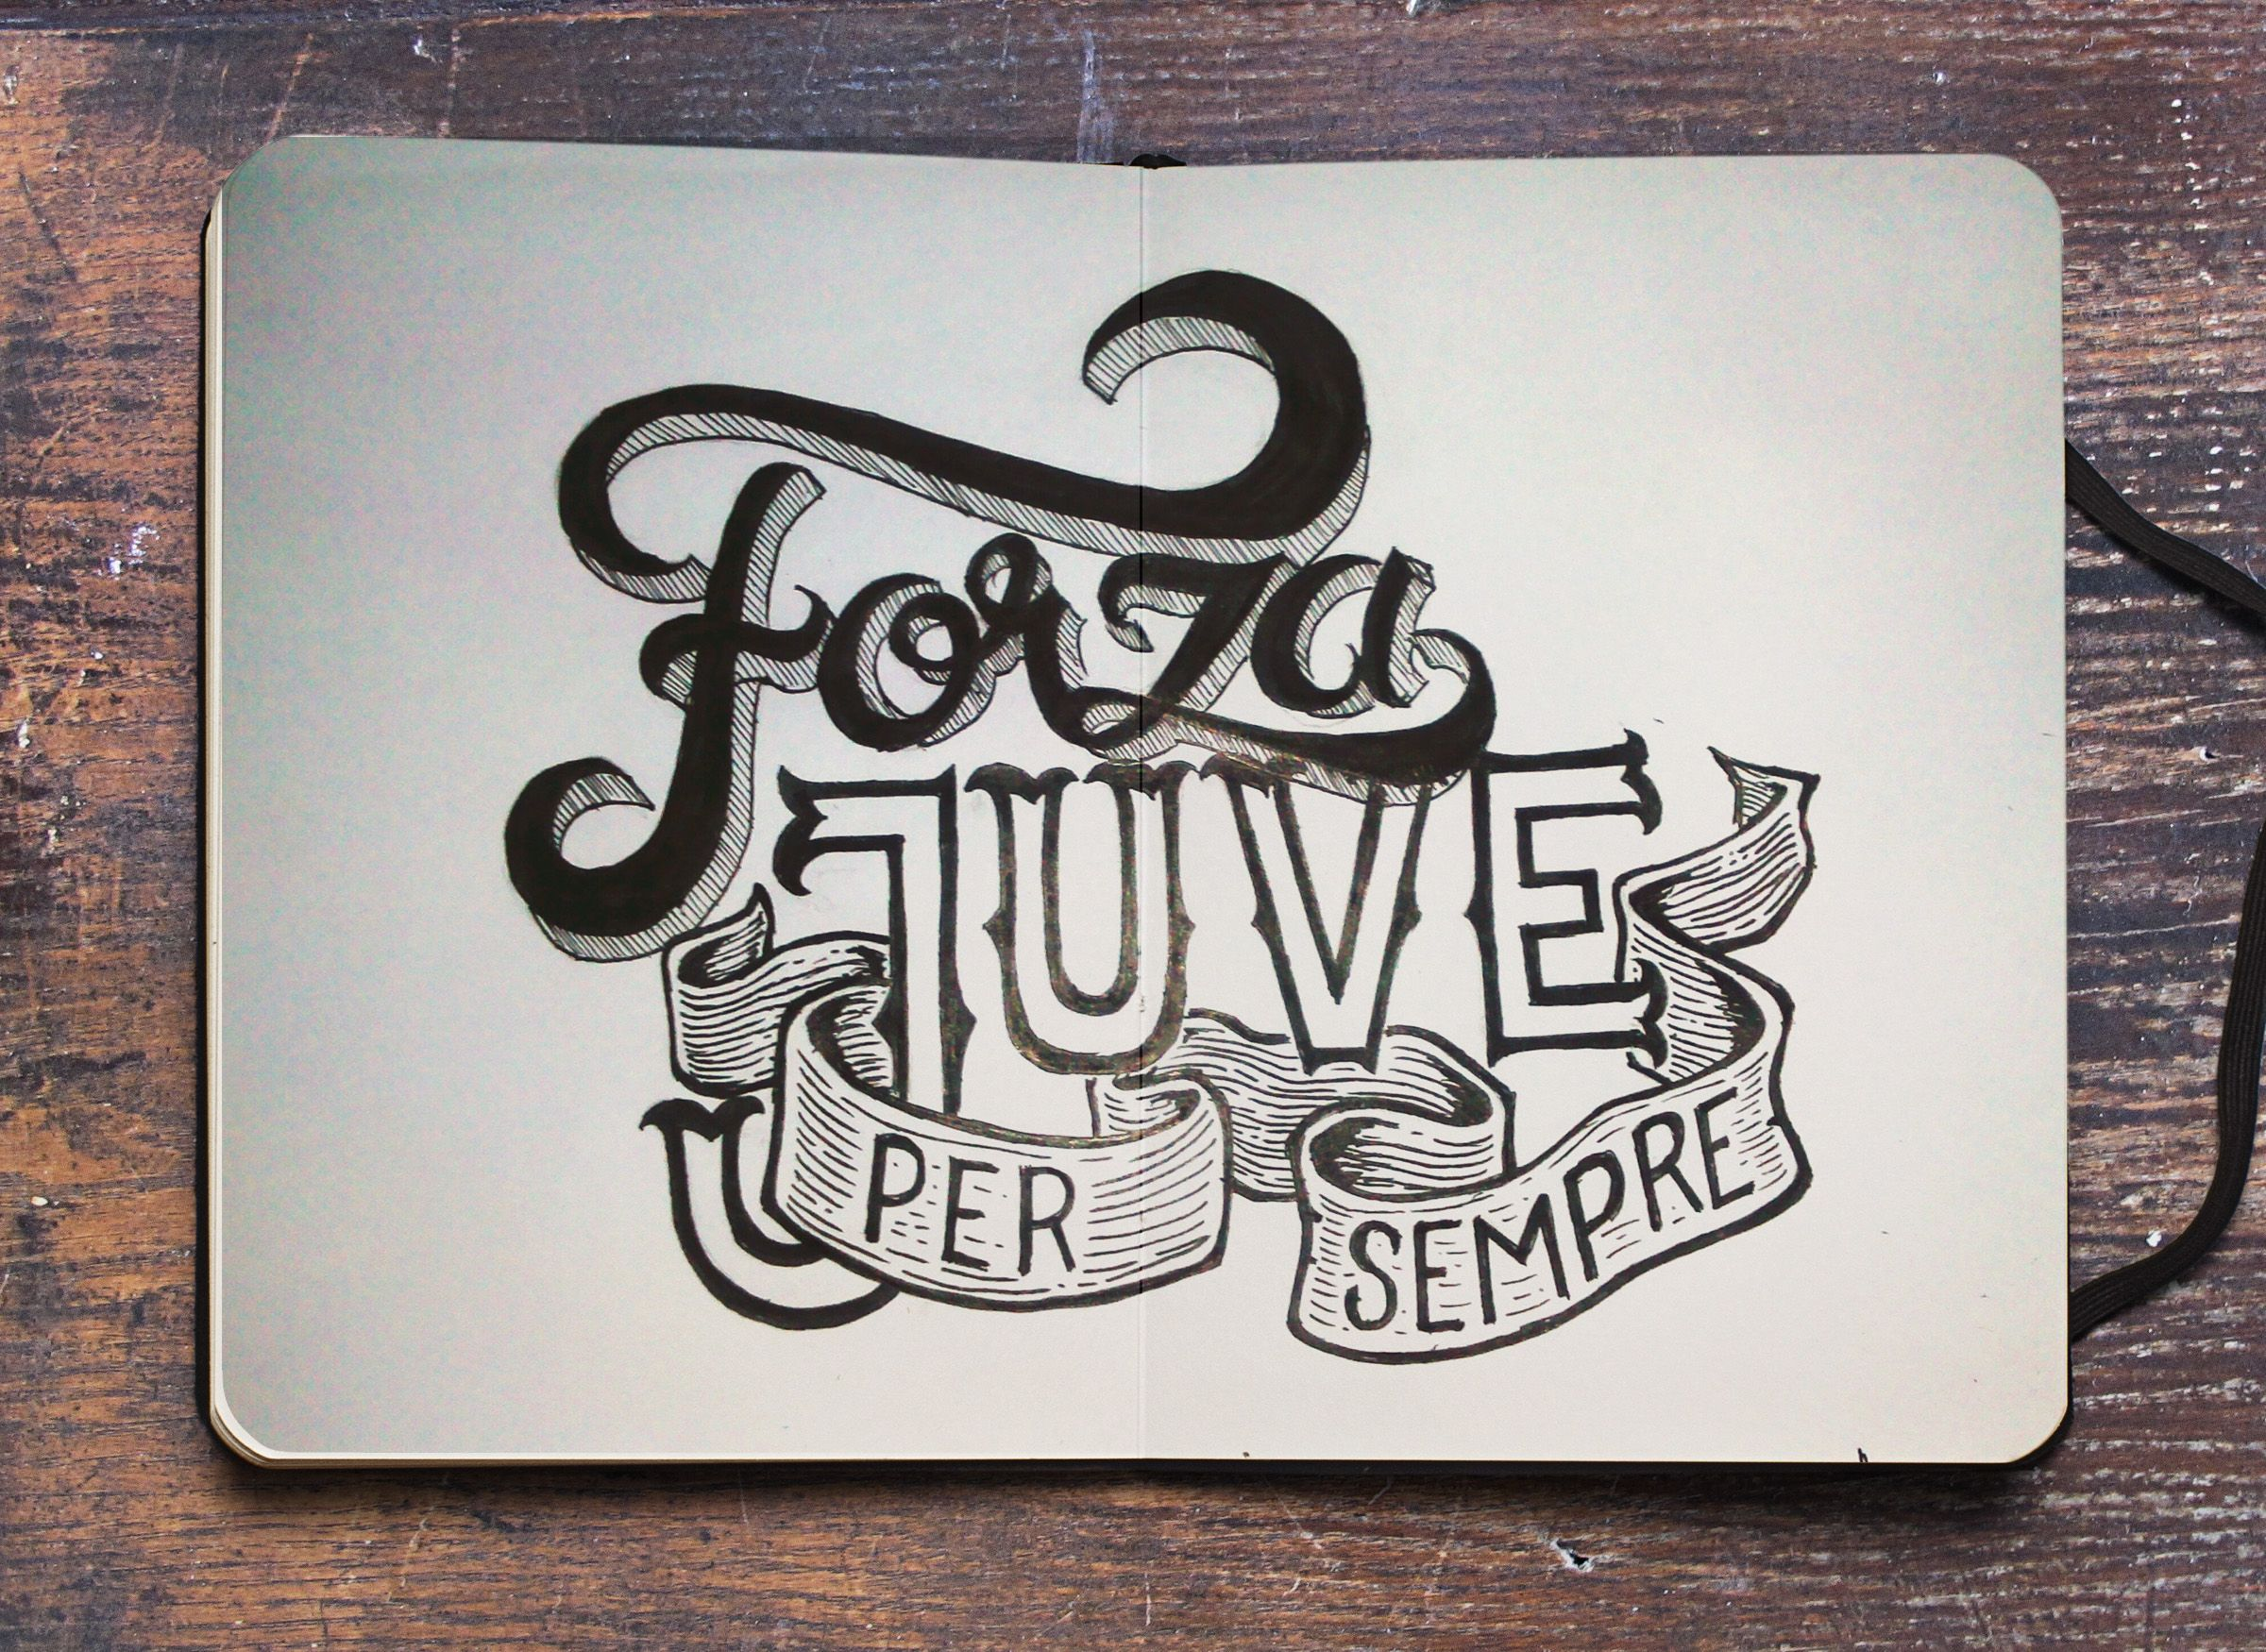 Dedicated for my favorite football team, JUVENTUS #ForzaJuve #Lettering #HandLettering #Type #Typography #Drawing #Pencil #Paper